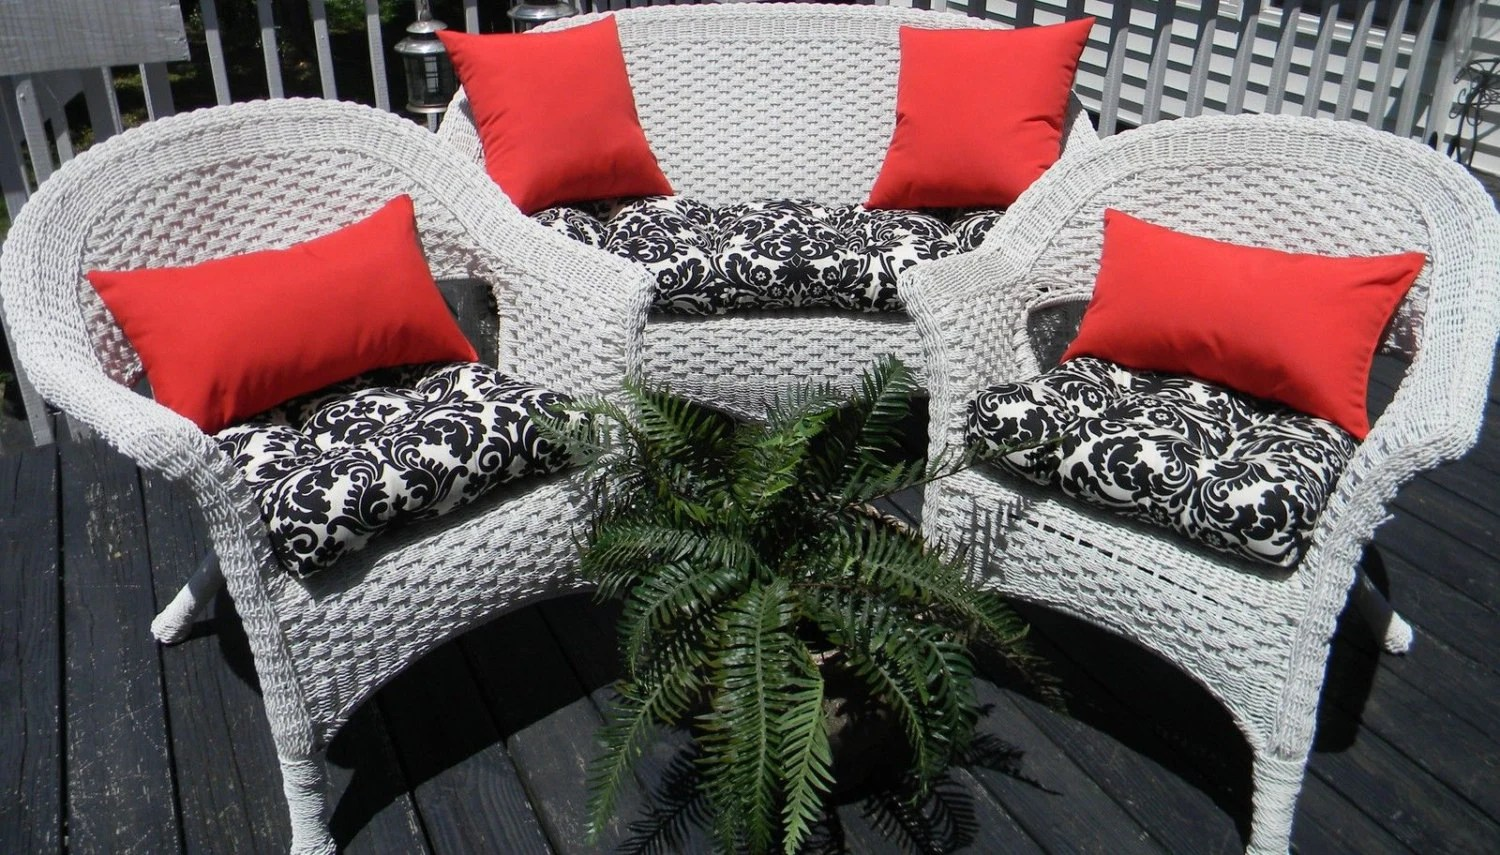 Outdoor Wicker Cushion And Pillow 7 Pc. Set Black & Cream